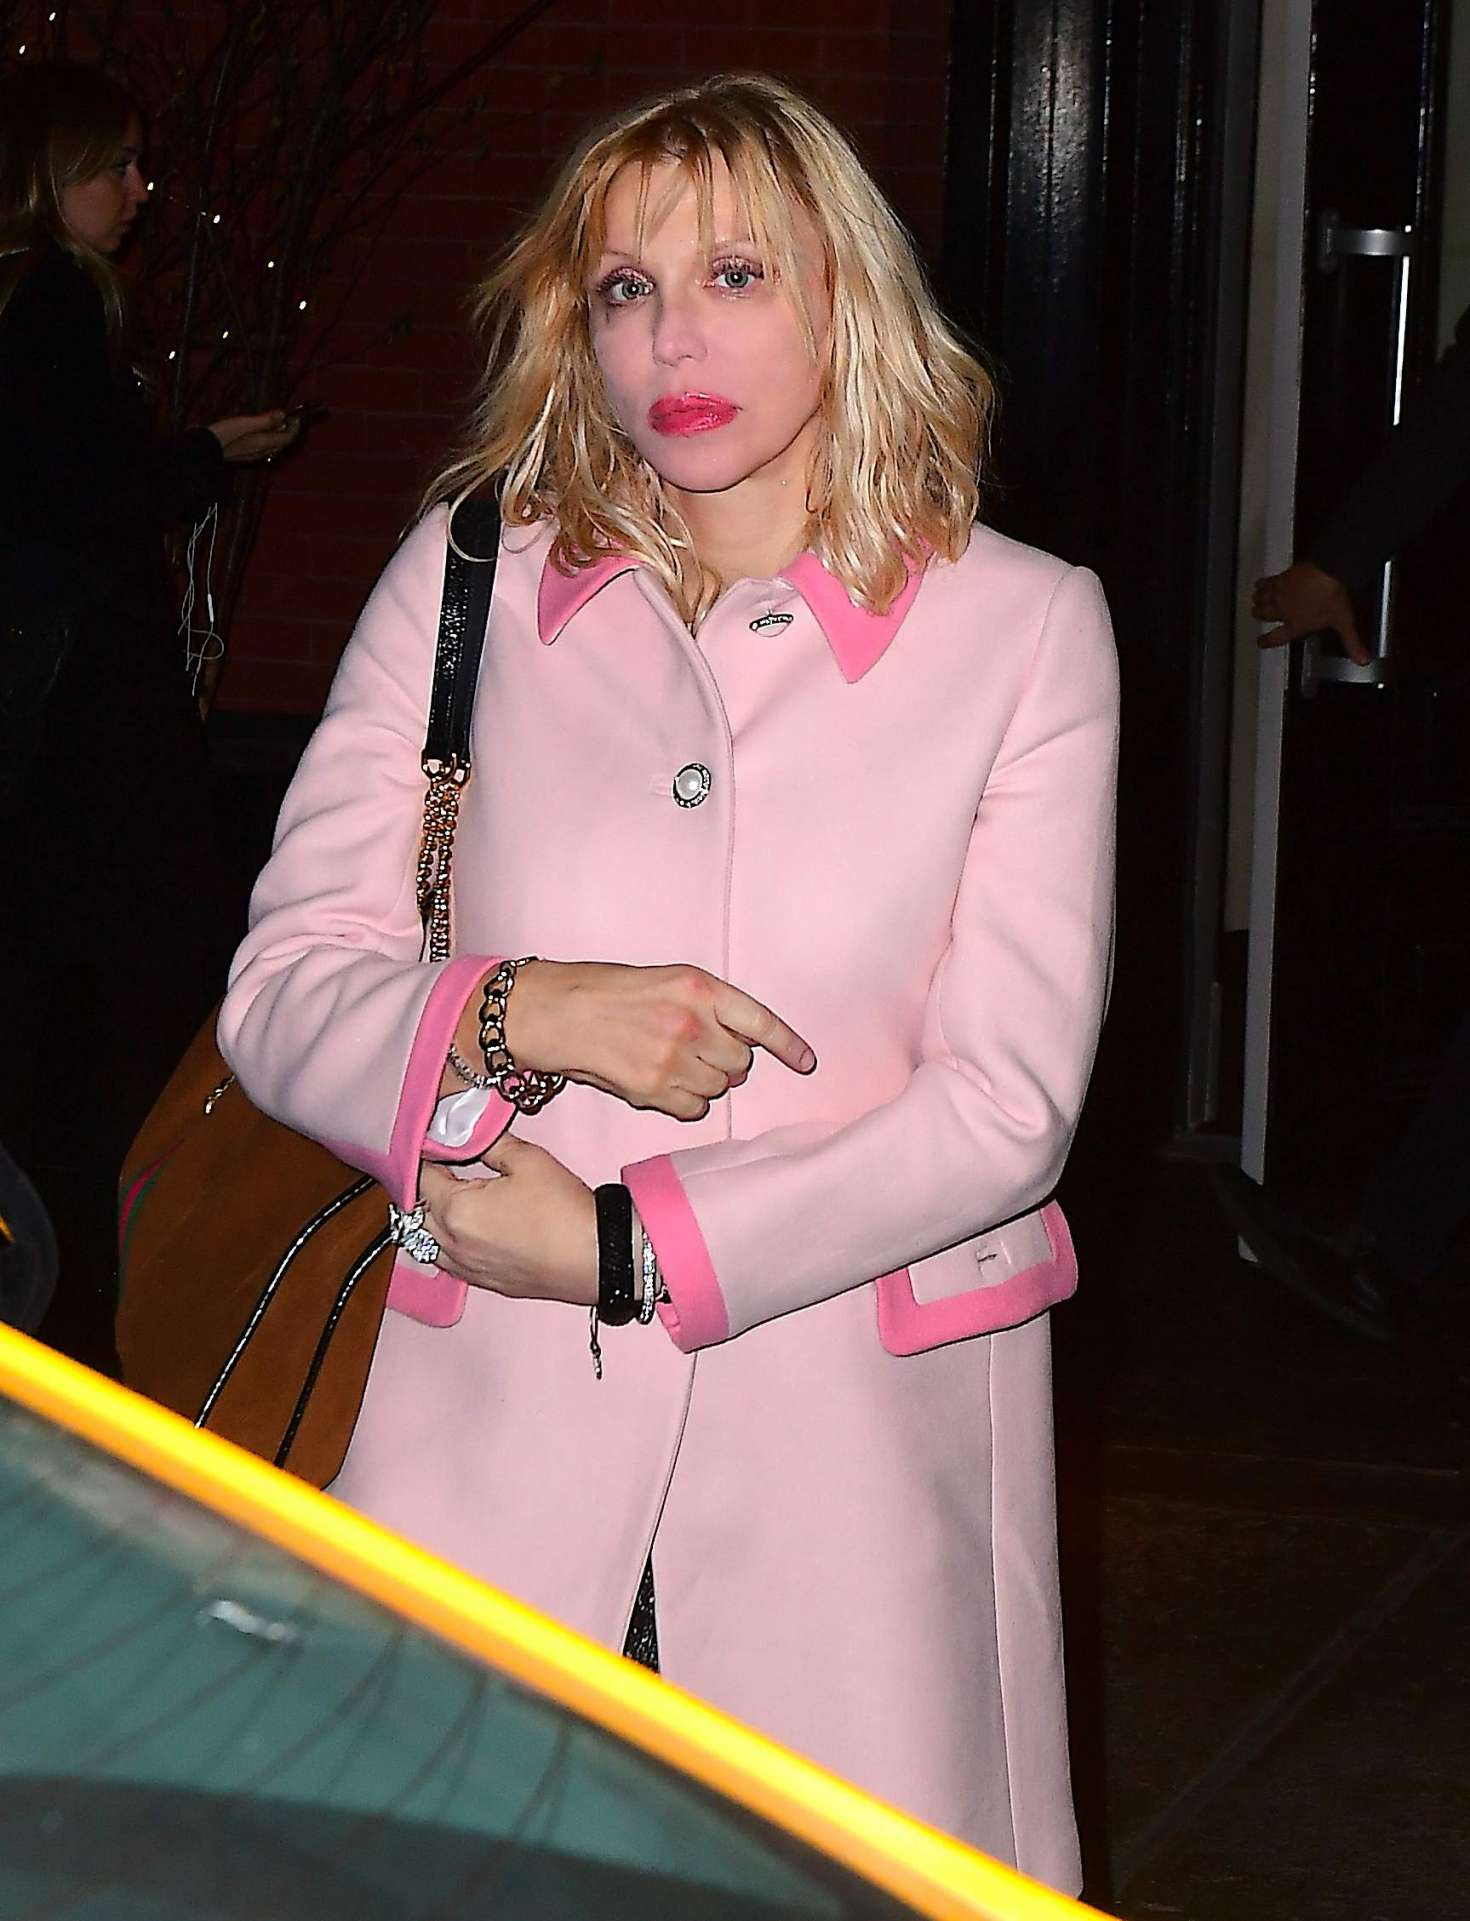 Courtney Love 2018 : Courtney Love: Arrives at the Mercer Kitchen -07